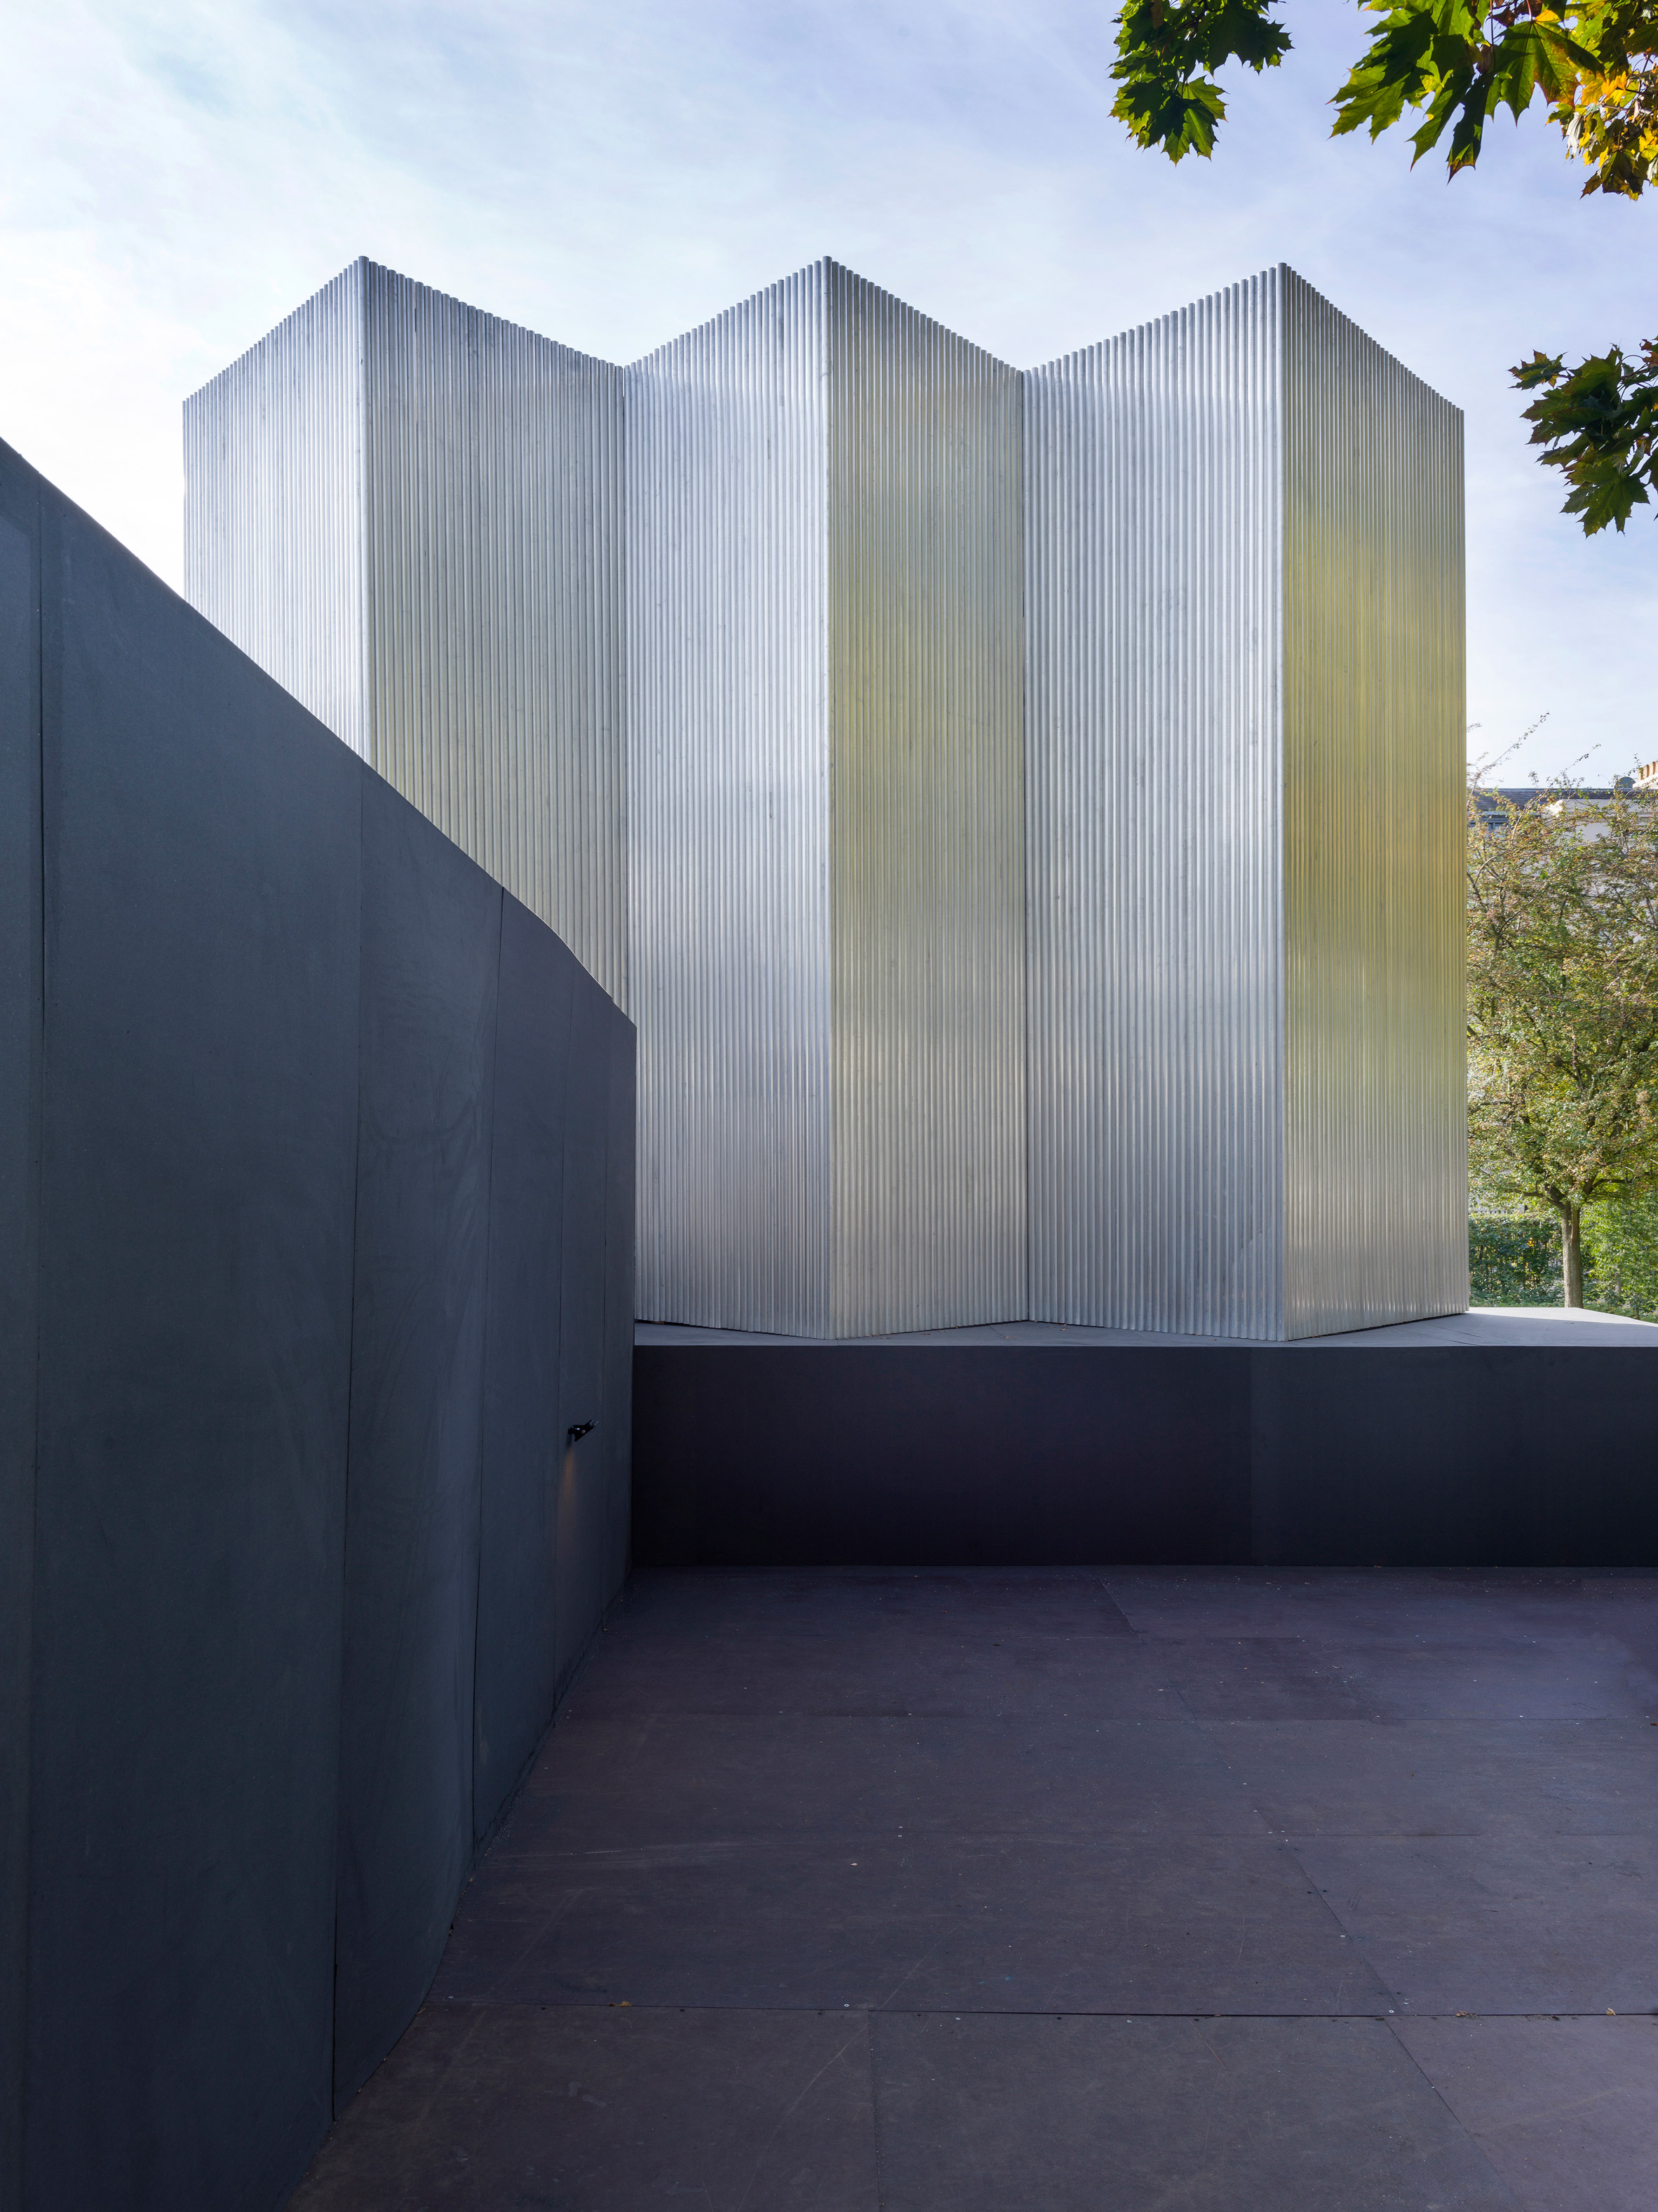 Universal Design Studio uses recycled aluminium to create sculptural entrance to Frieze London